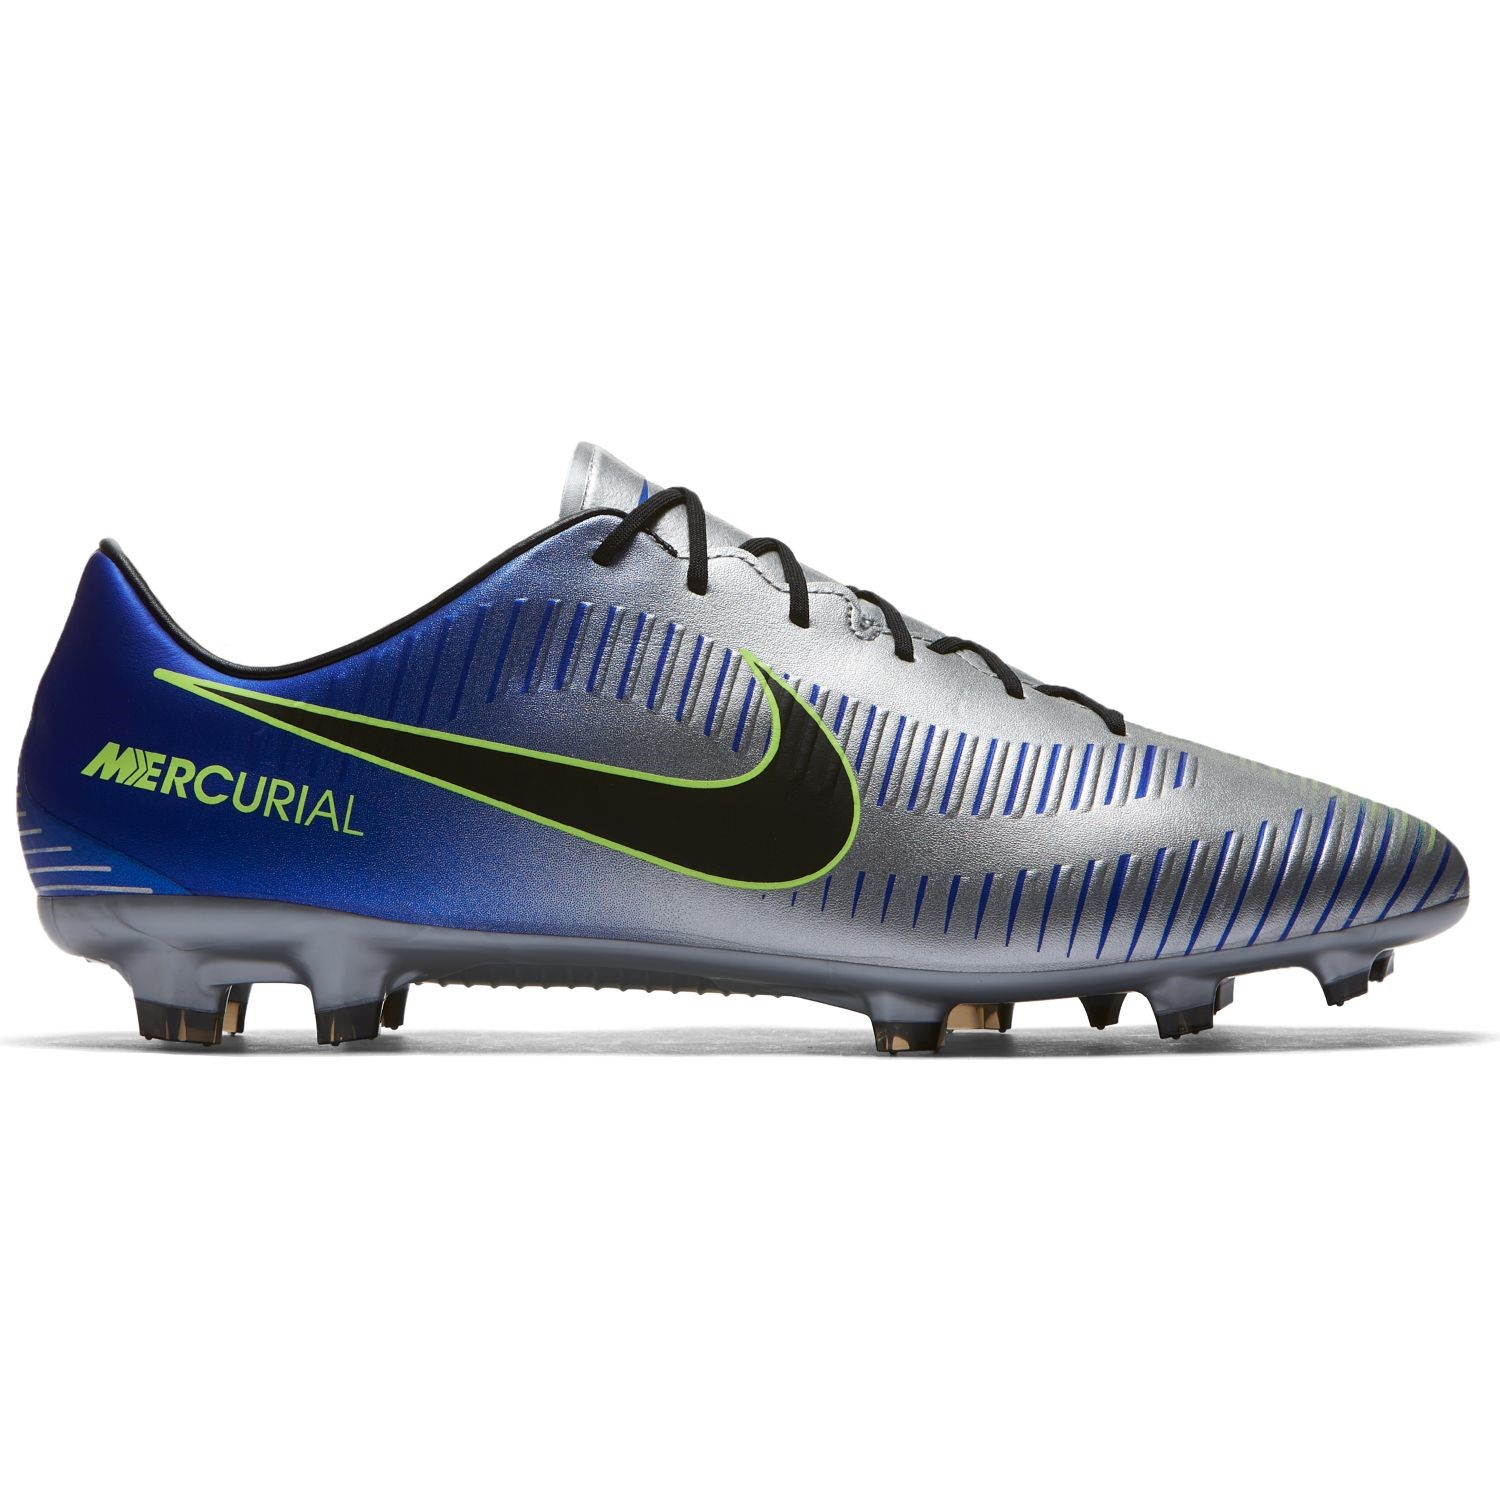 167ea207d92 Nike Mercurial Veloce III Neymar Jr FG - Mens Football Boots - Racer  Blue Black